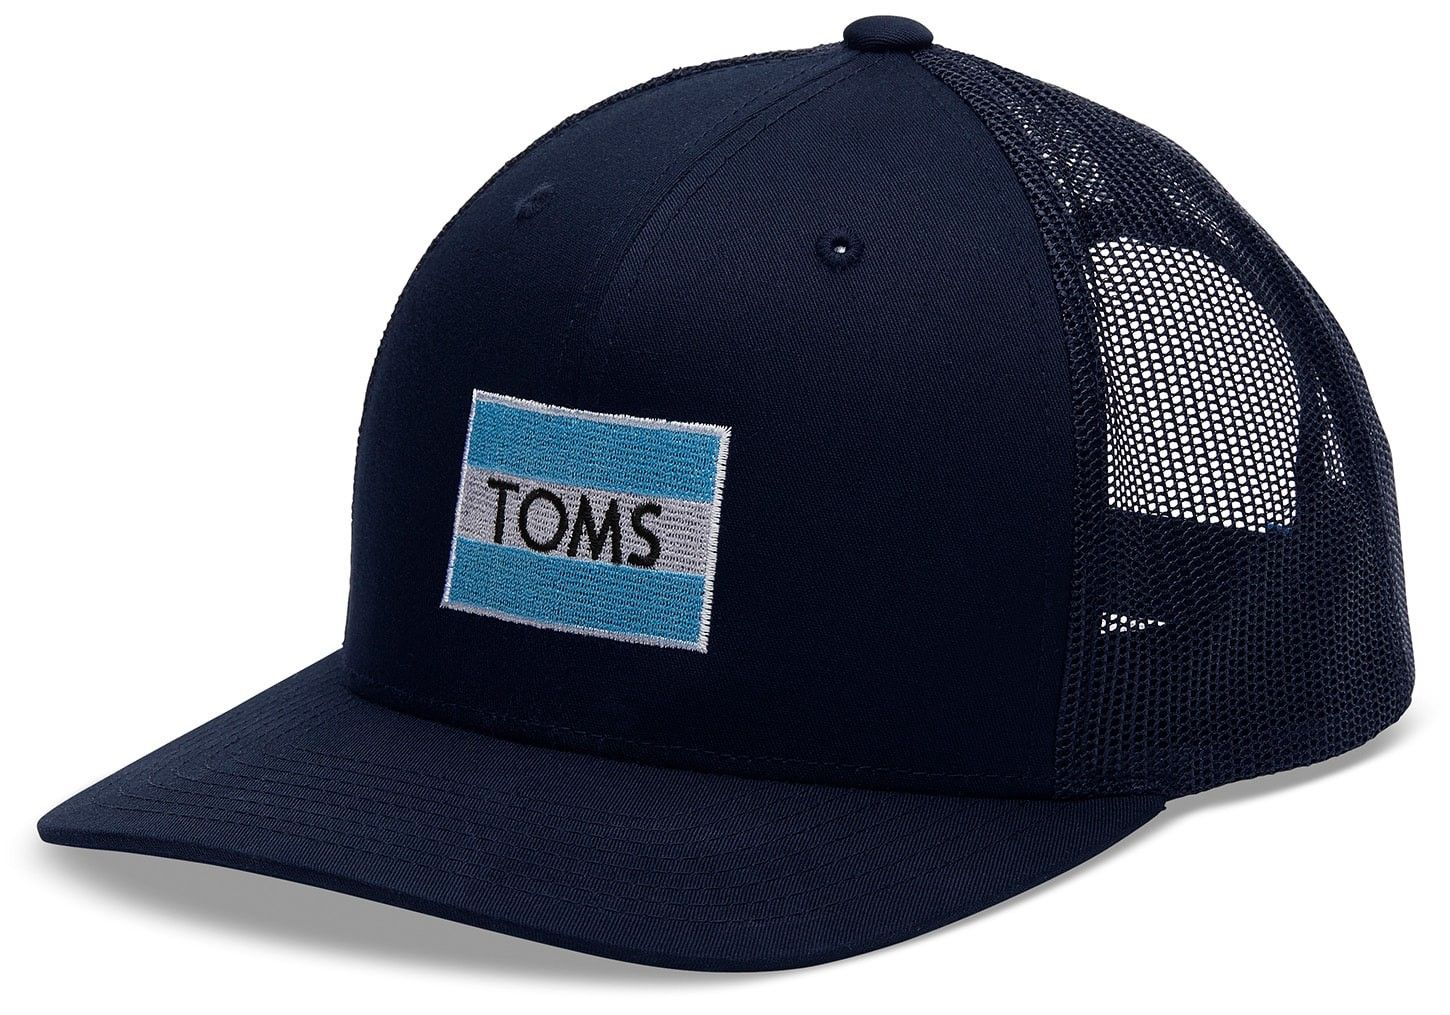 87ba03d651f9a Toms Flag Navy Trucker Hat - | Products in 2019 | Patagonia hat ...